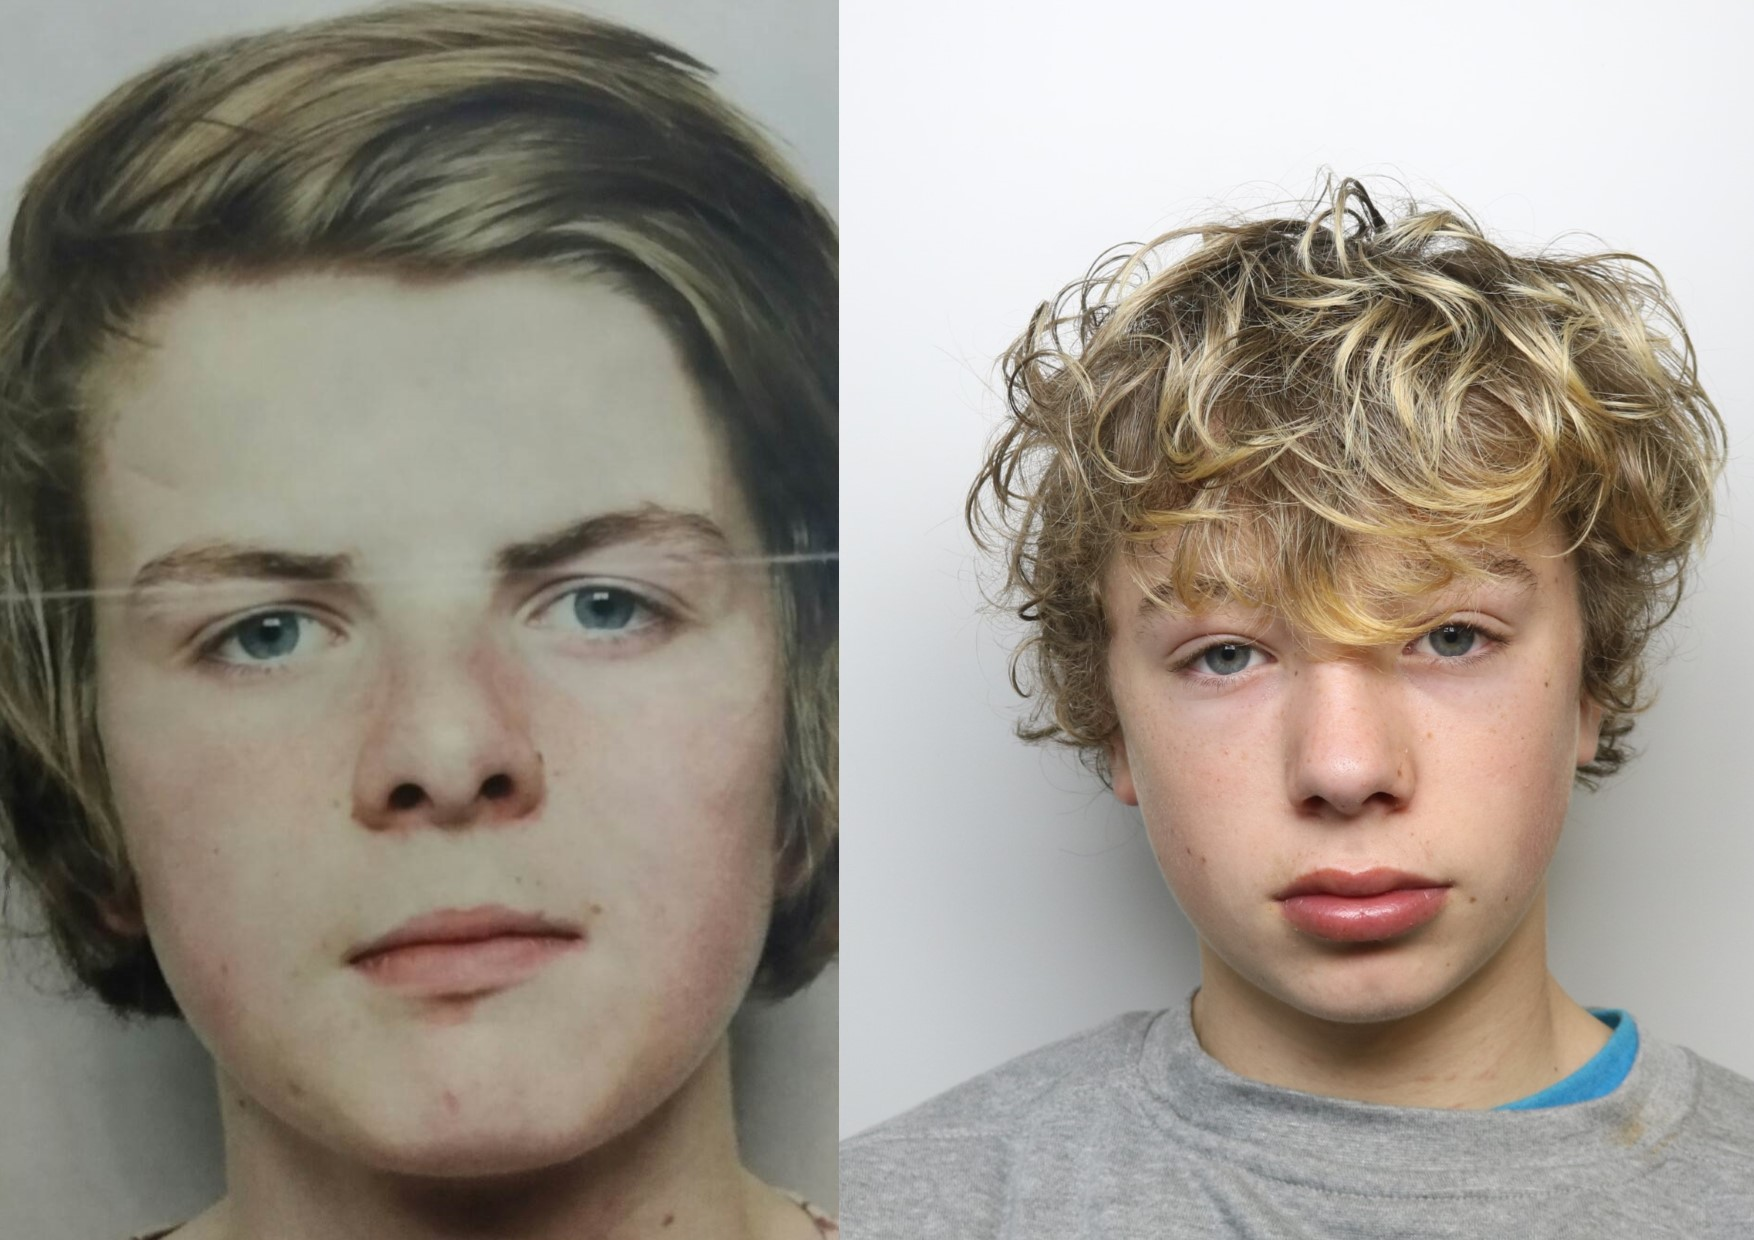 14-year-old Ewan and 15-year-old Shane have gone missing. Can you help police find them?